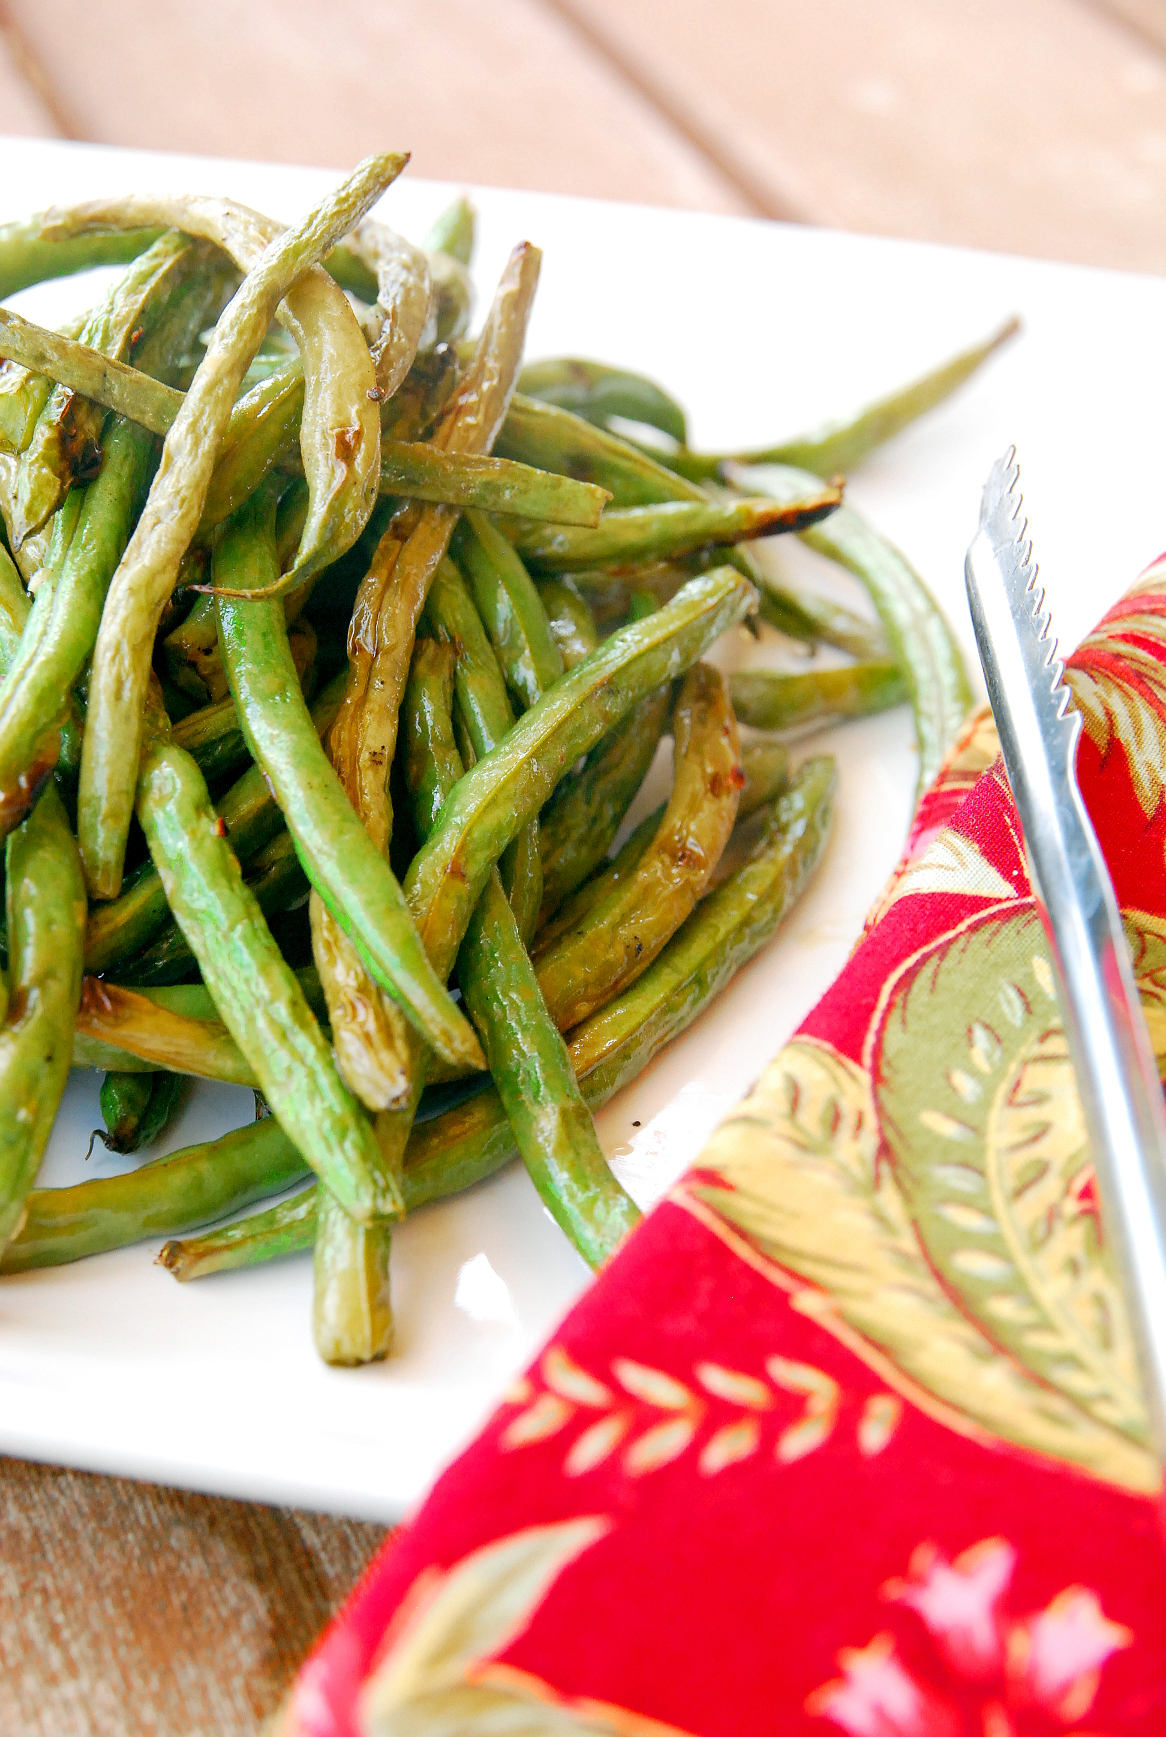 Grilled Green Beans (yes, you can!)